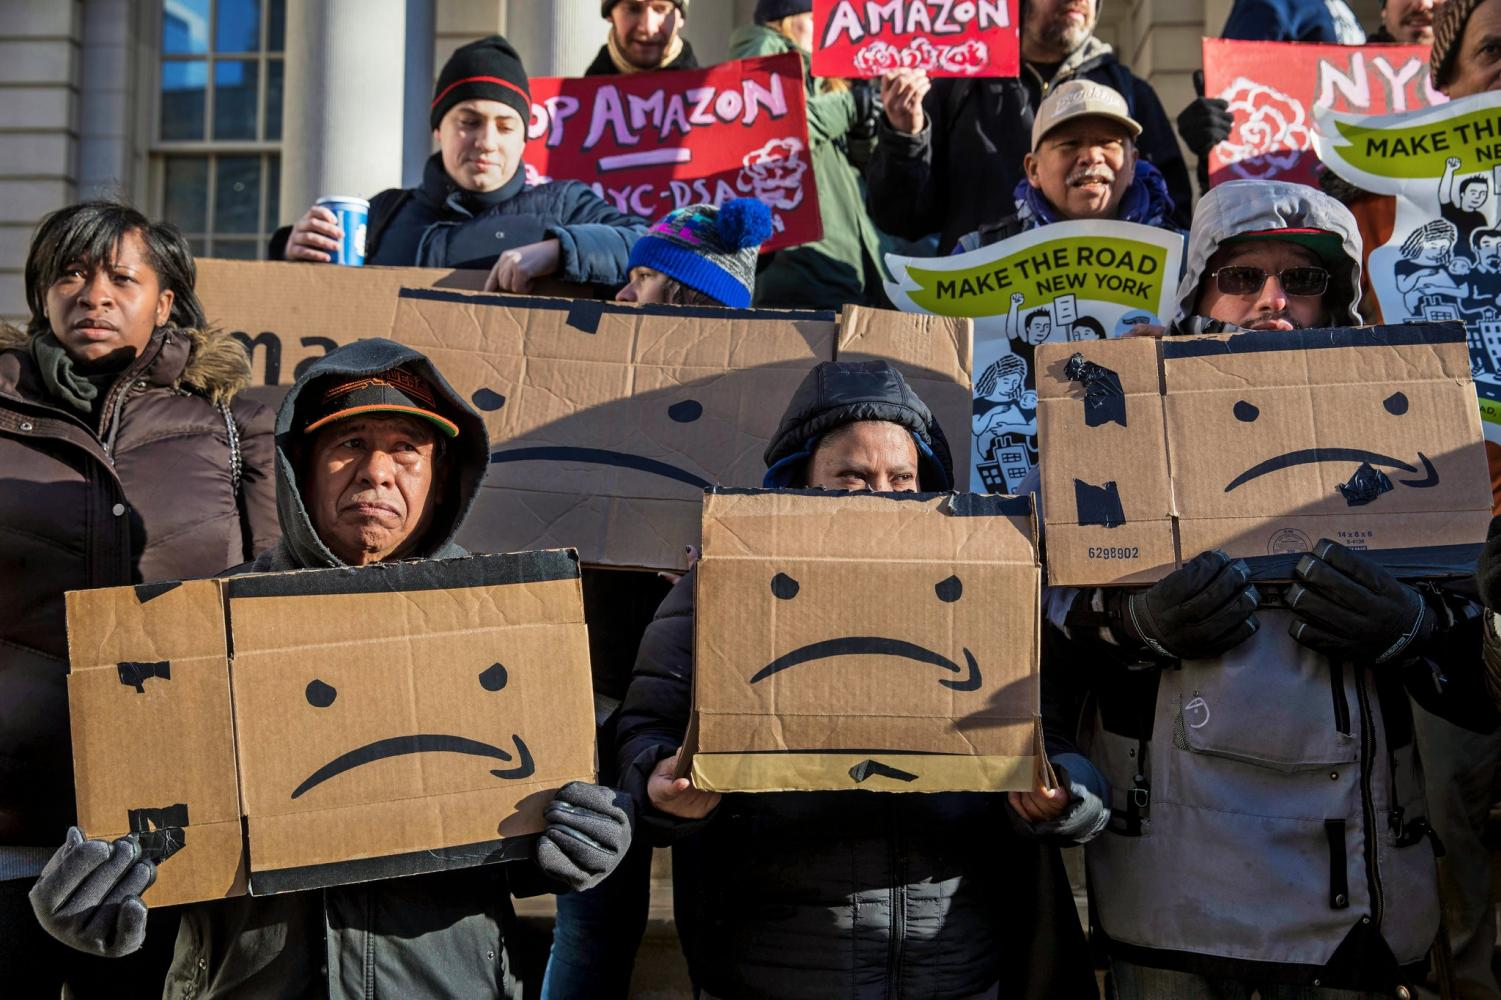 Anti-Amazon protesters gather before a New York Council meeting, displaying their opposition to Amazon's plans for a headquarters location in Long Island City. Amazon ultimately scrapped their plans for the Long Island City headquarters after receiving harsh backlash from lawmakers, progressive activists, and members of the local community. (Credit: Hiroko Masuike/The New York Times)